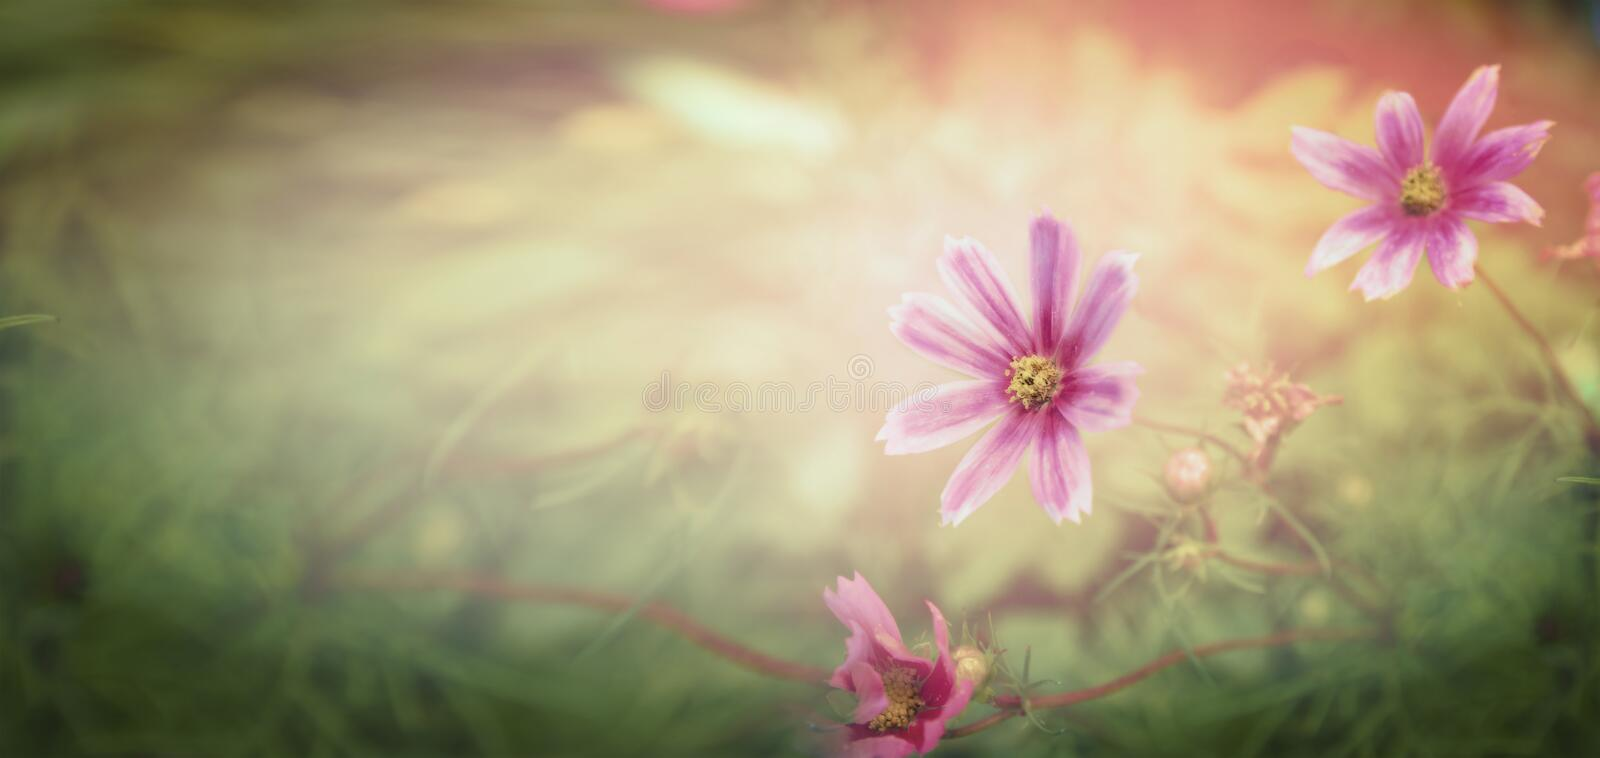 Sunset flowers on nature background, banner. For website stock photo